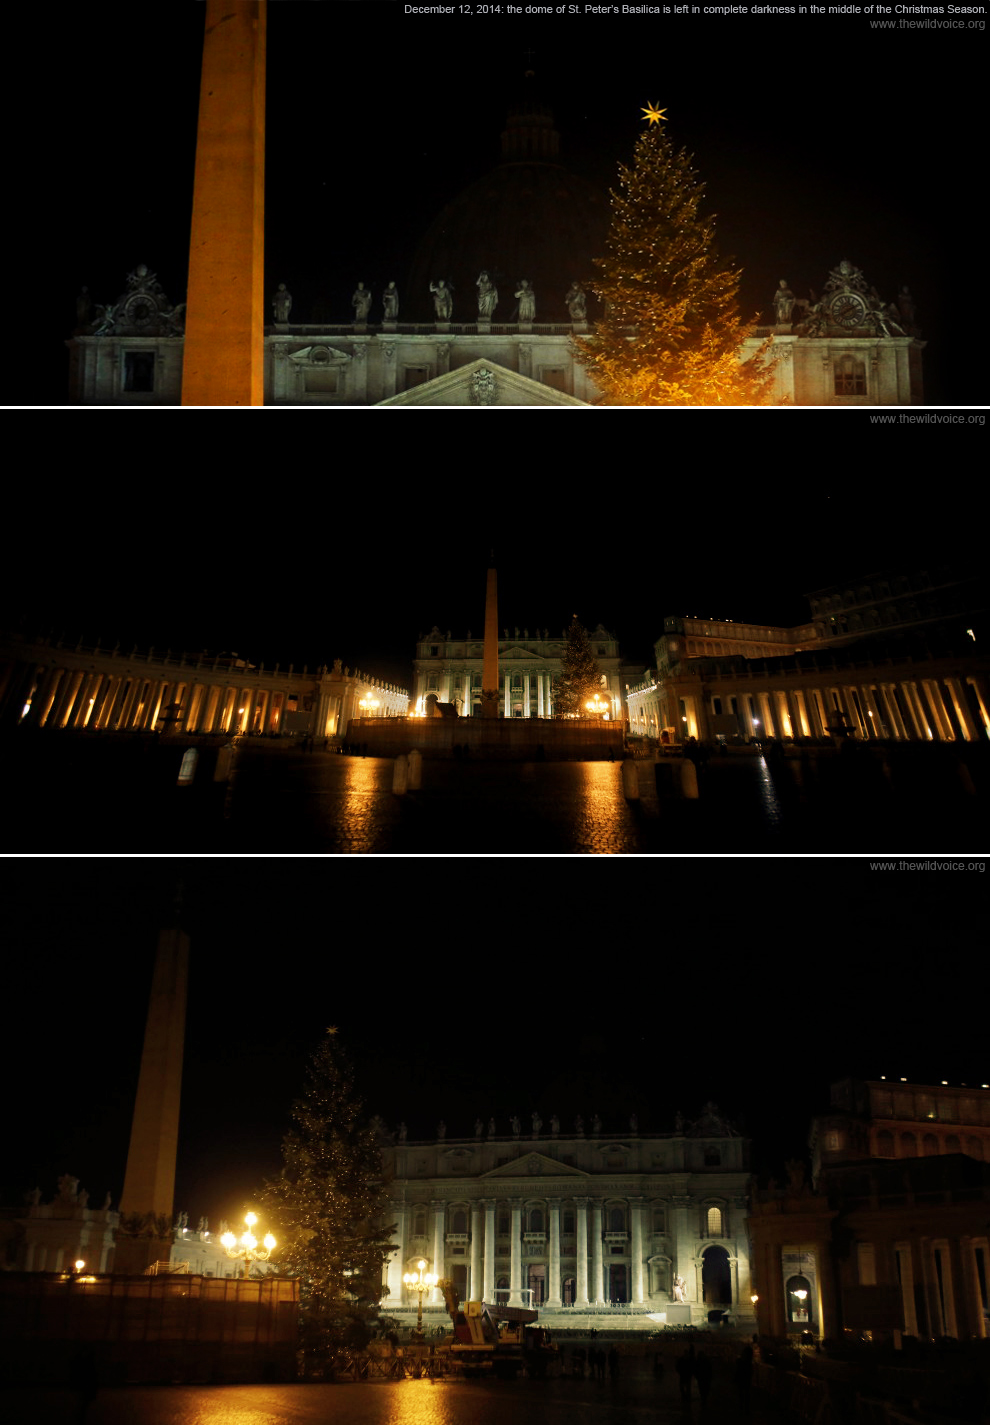 St. Peter's Basilica, dome, black, invisible, False Prophet, dark, darkness, the wild voice, ritual, Rome, Church, Catholic